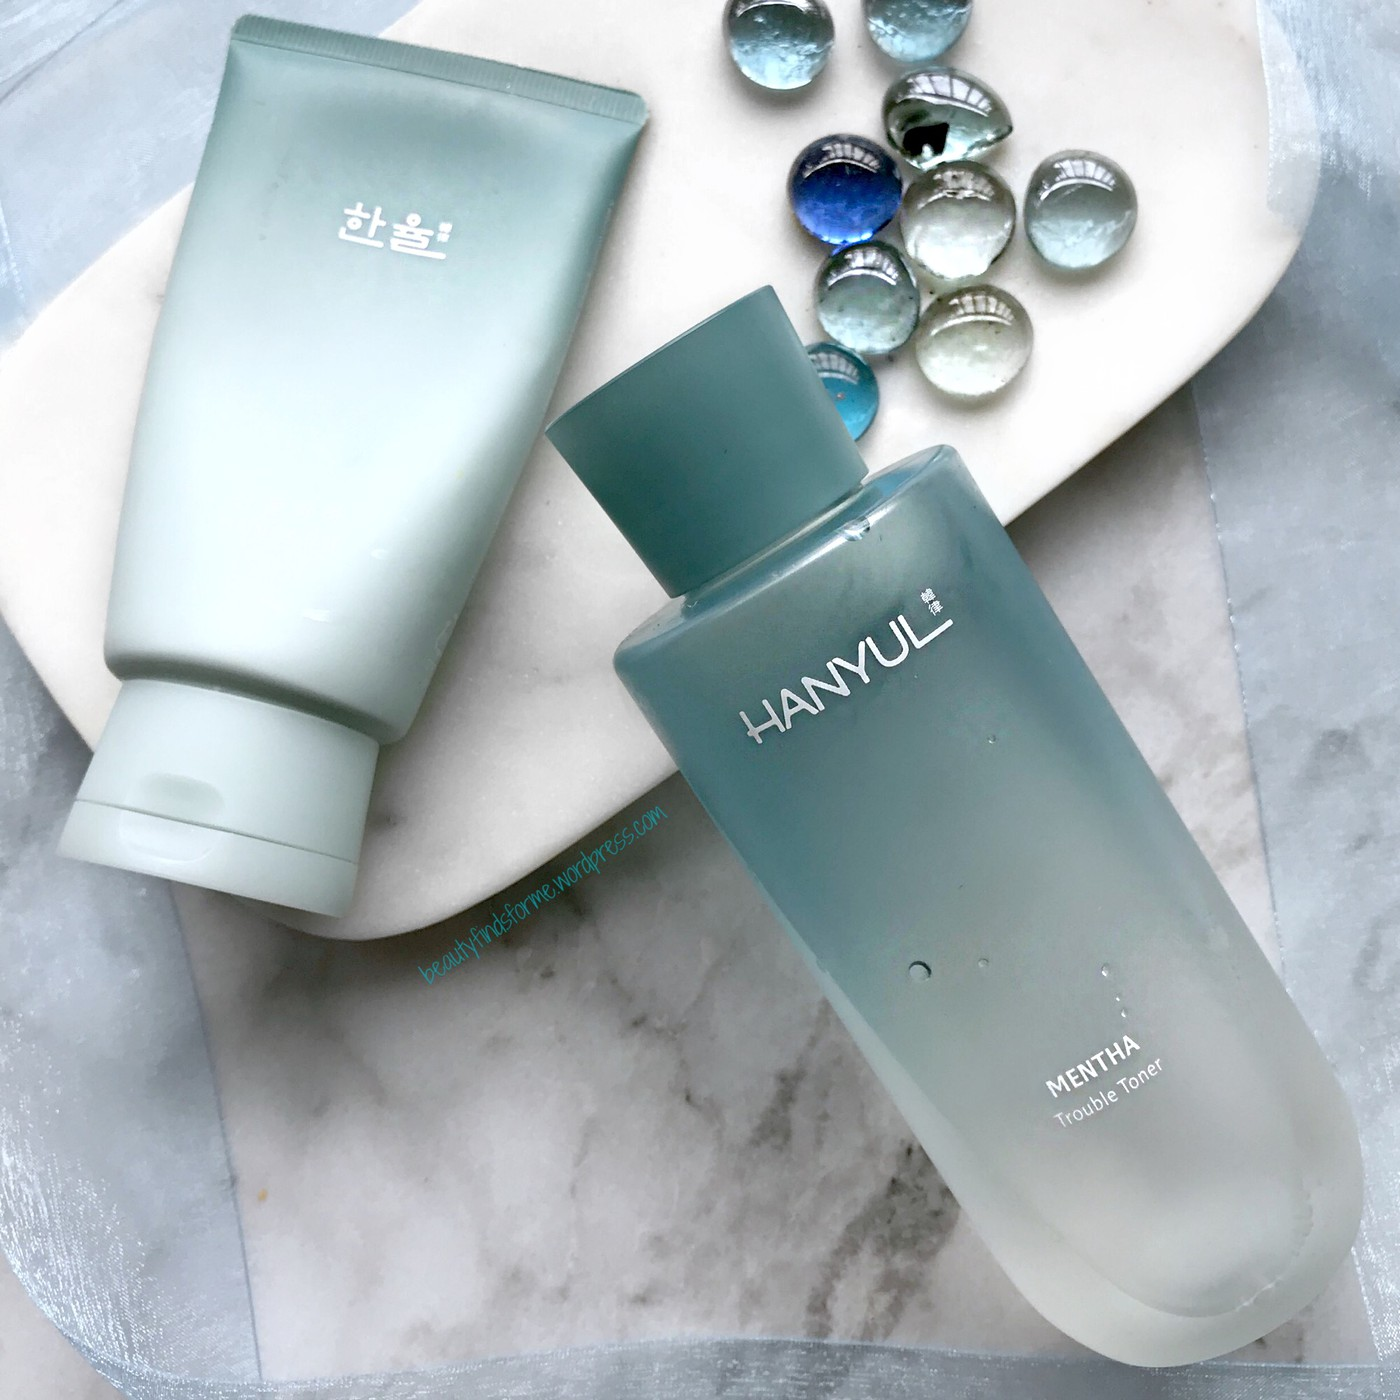 Hanyul is part of the Amore Pacific family and you can find their products at BeautyTap, formally W2Beauty. Hanyul is their line of Traditional Korean ...